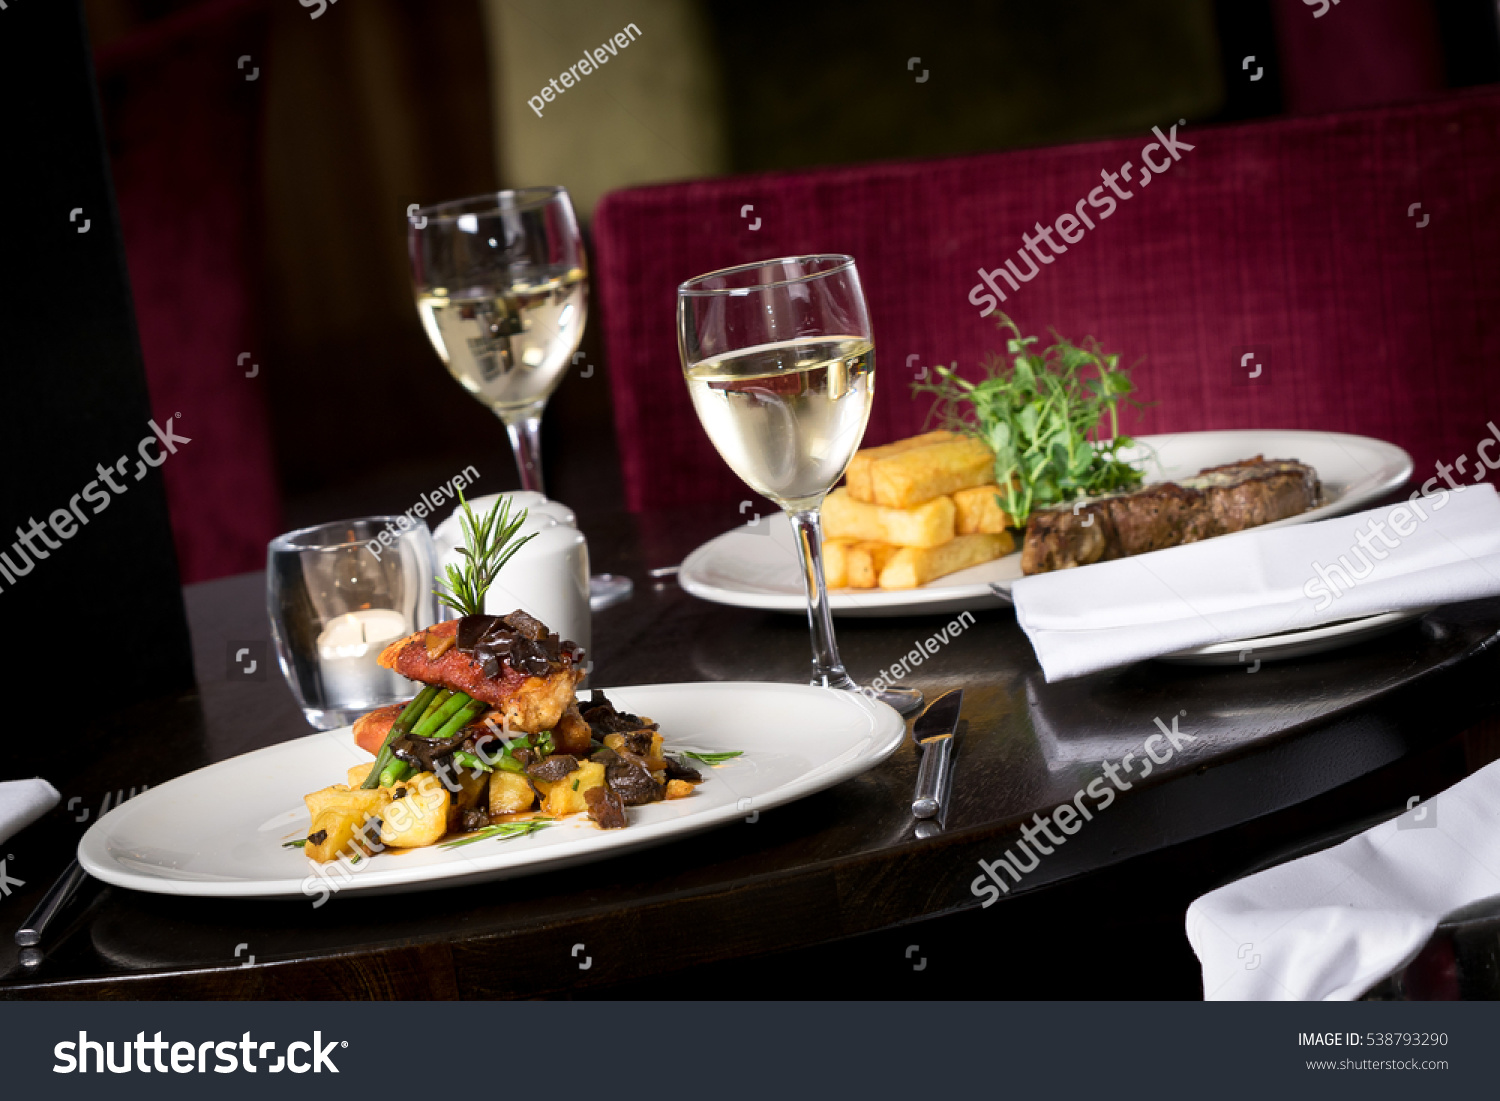 Restaurant table for two - Restaurant Table Set Up For Two Main Dish Entre Steak Fish Cuisine Fries Fine Dinning White